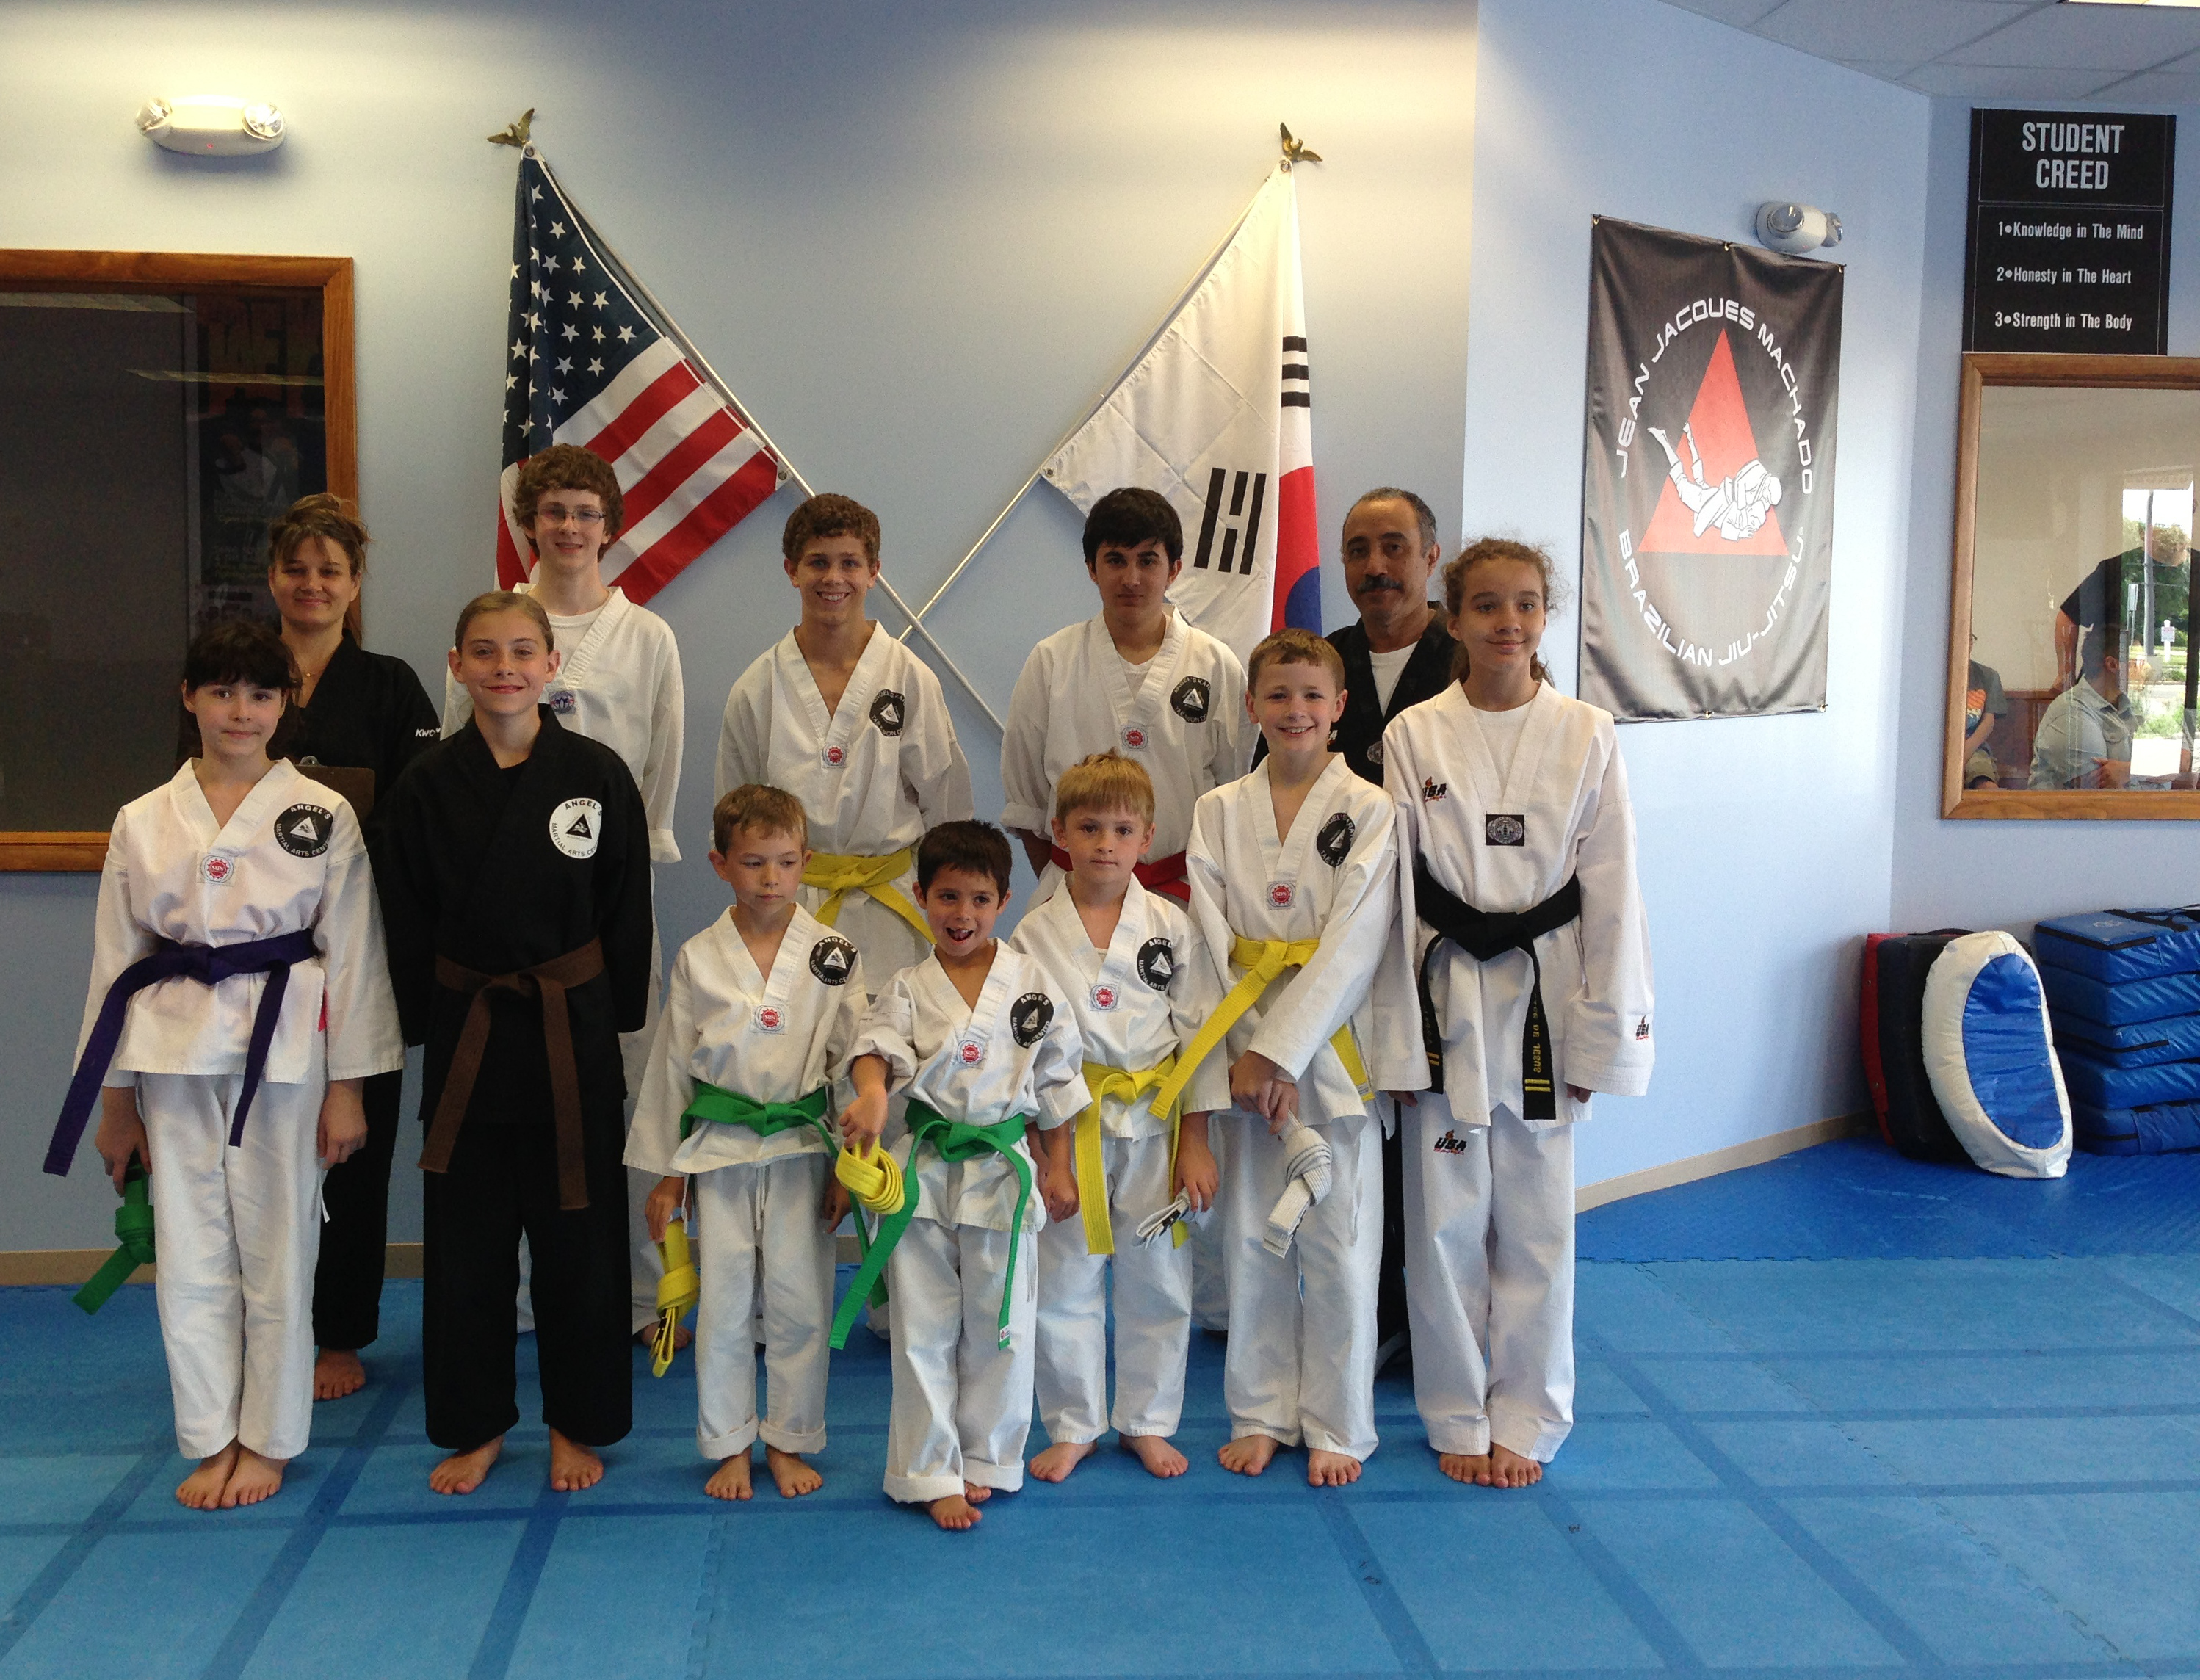 Another Exciting Taekwondo Promotion at Angel's Karate